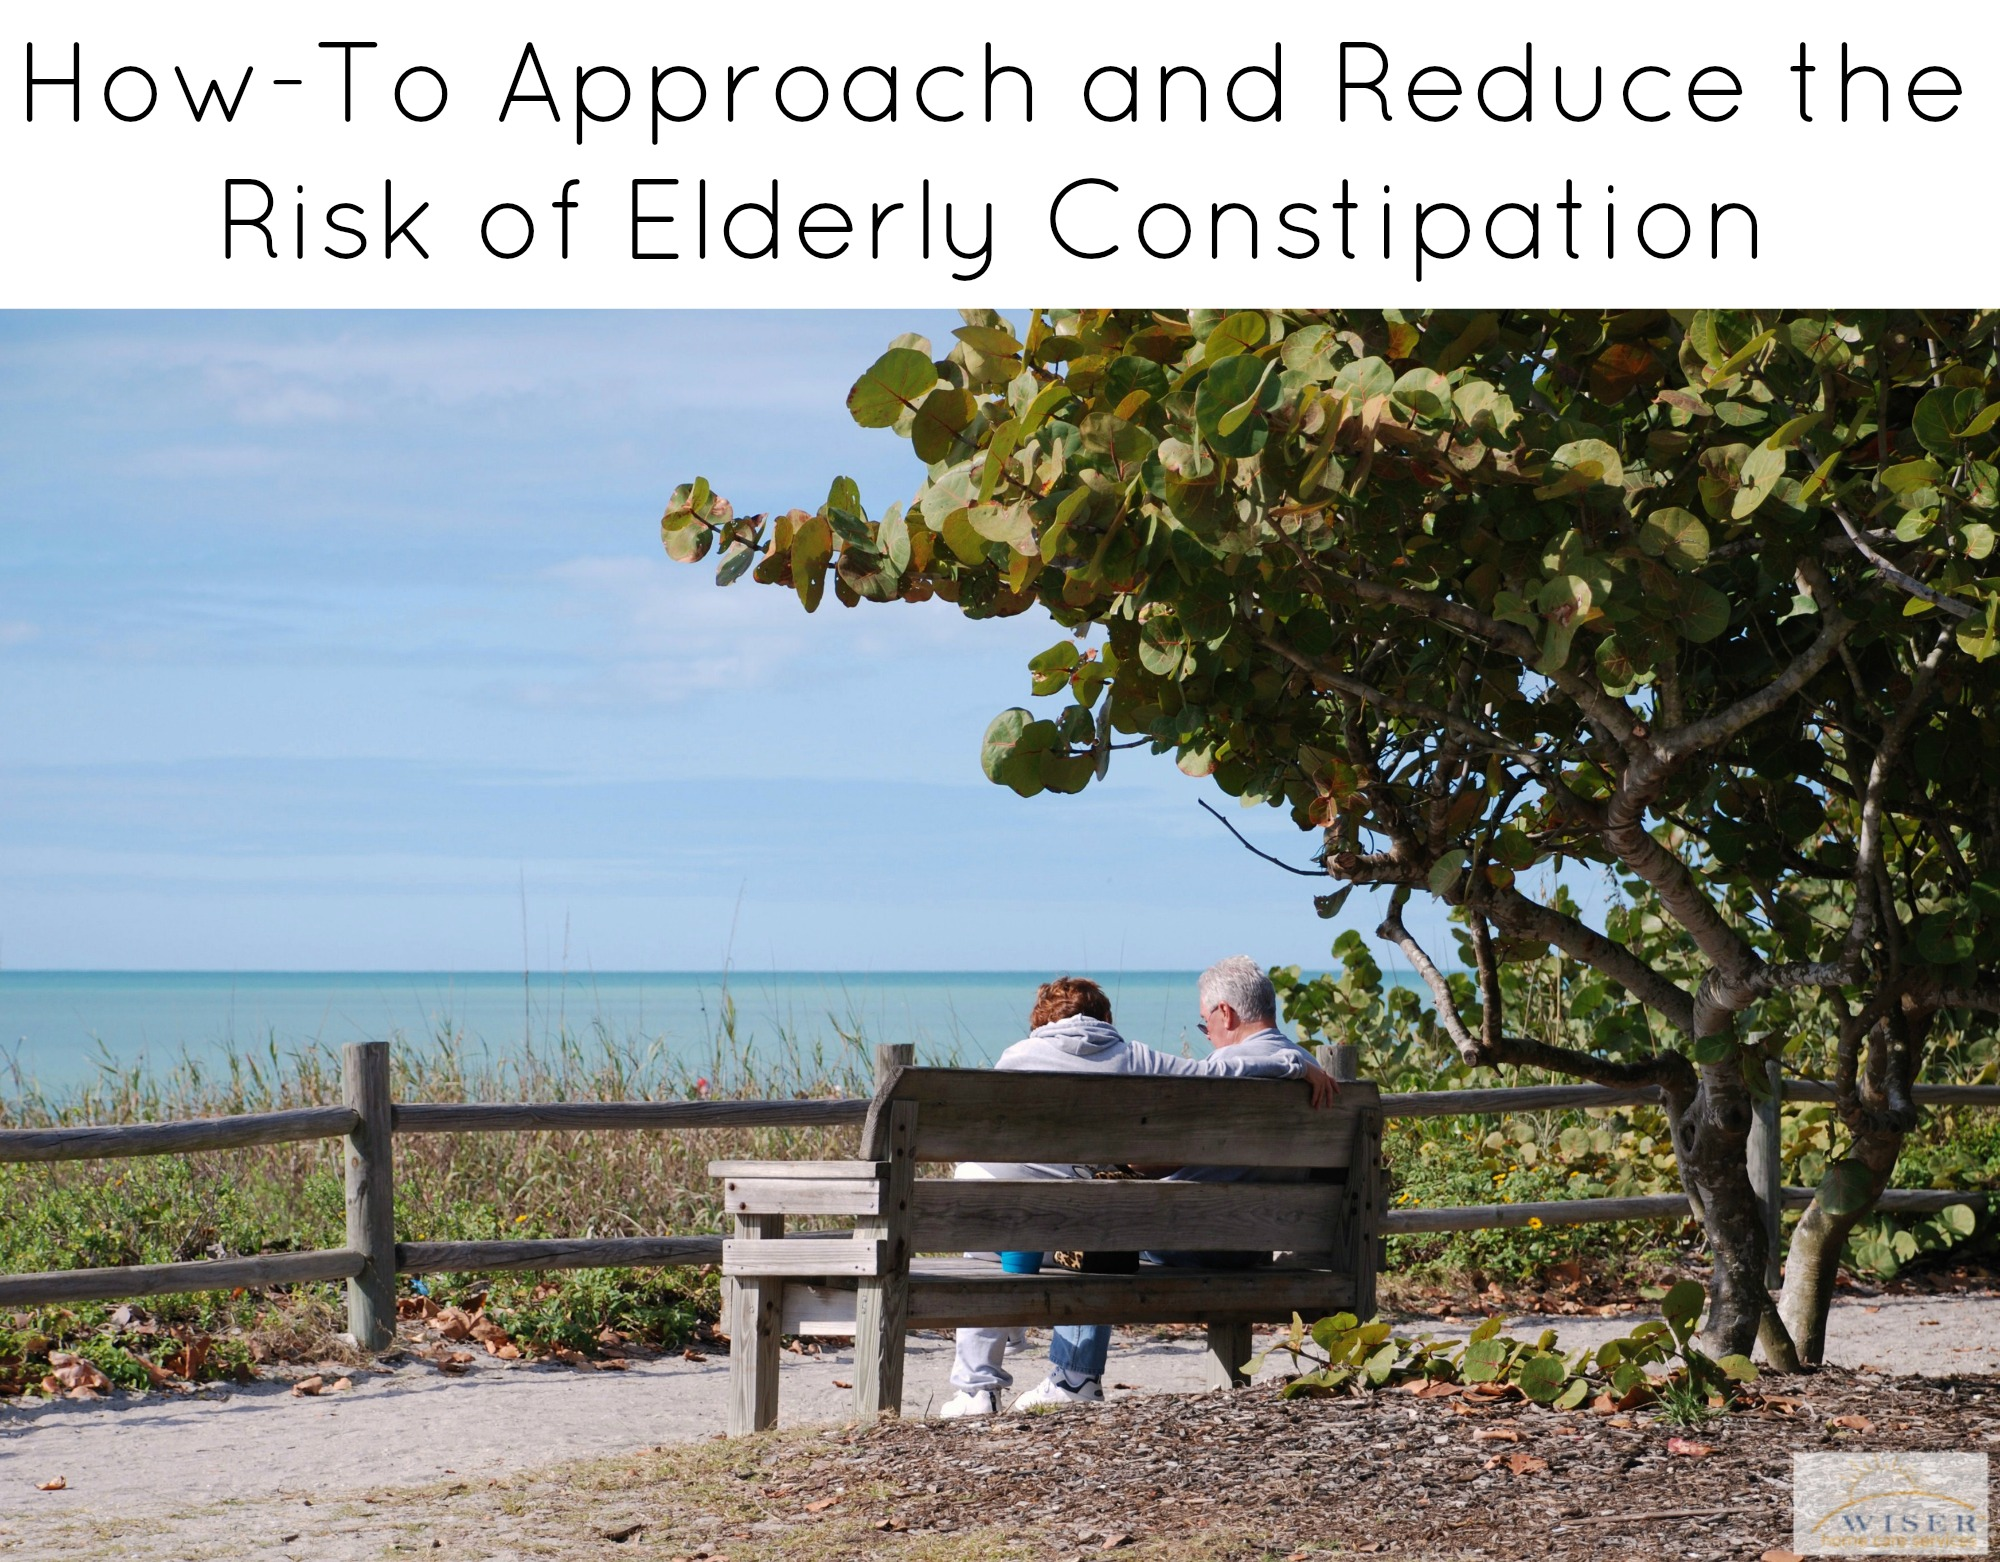 Constipation amongst our elderly loved ones is an increasingly prevalent issue. Using these tips from WHCS' caregivers can help reduce your elders risk.